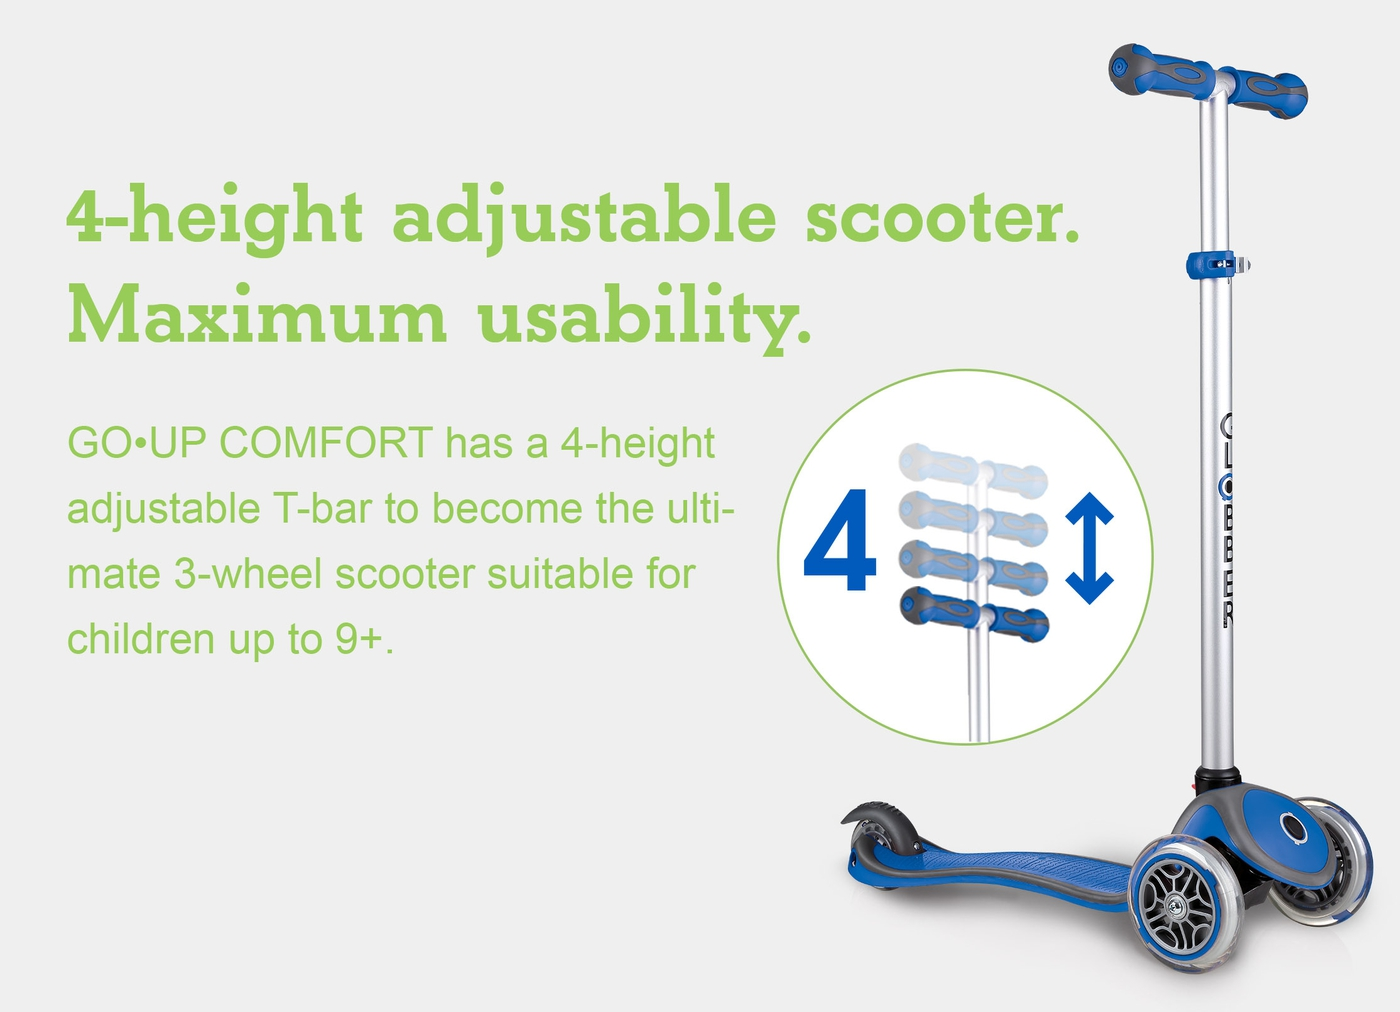 4-height adjustable scooter. Maximum usability.